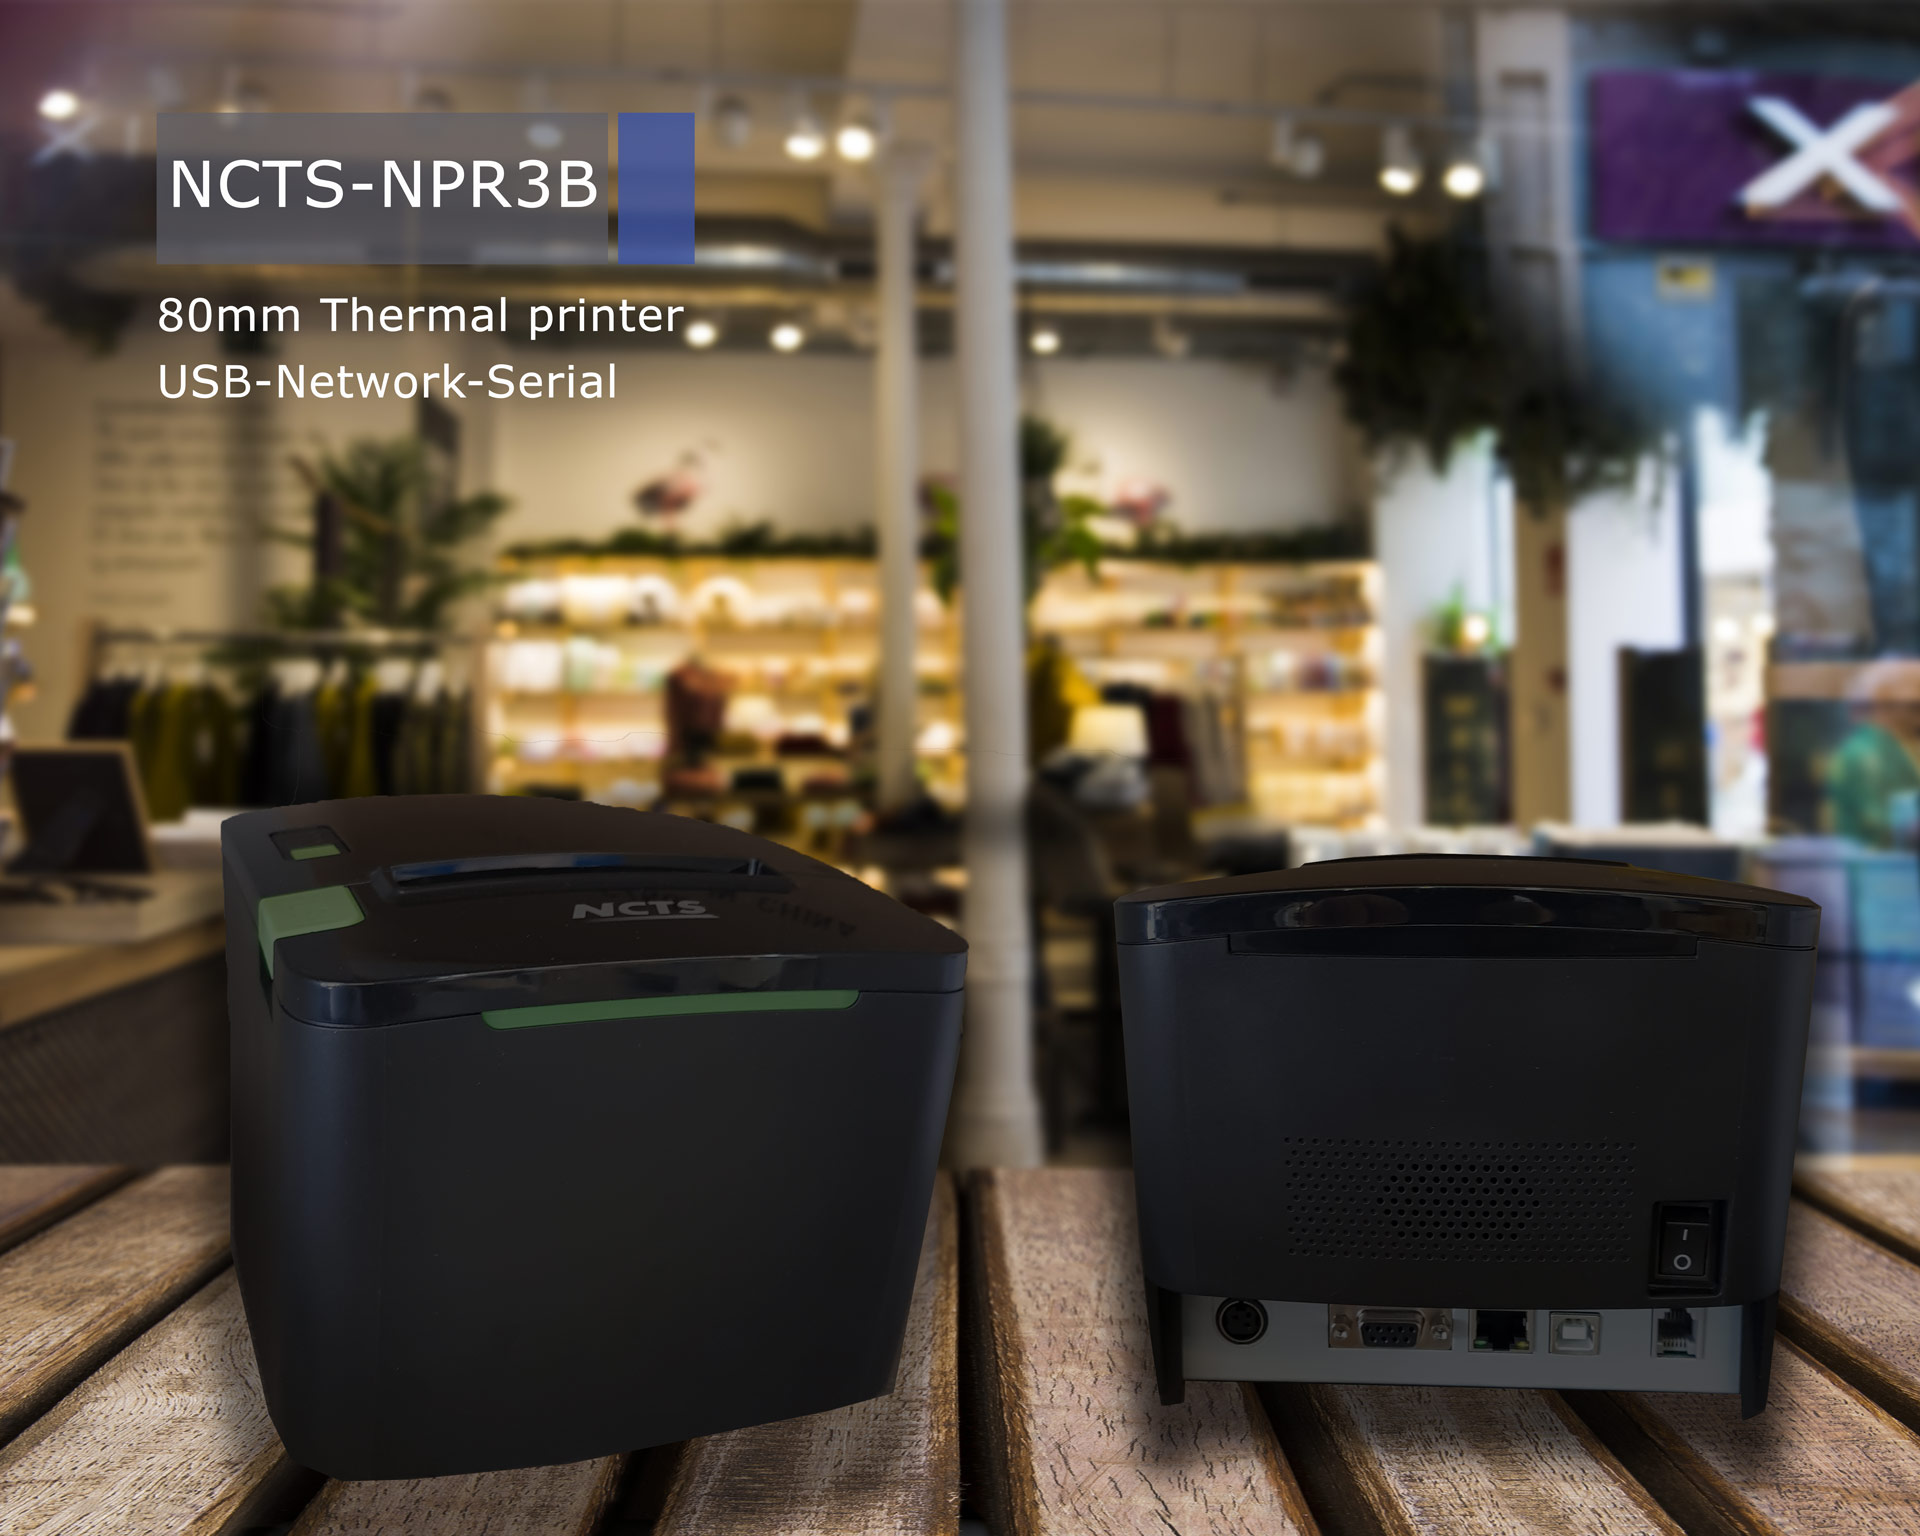 NCTS RECIPT RINTER NCTS-NPR3B